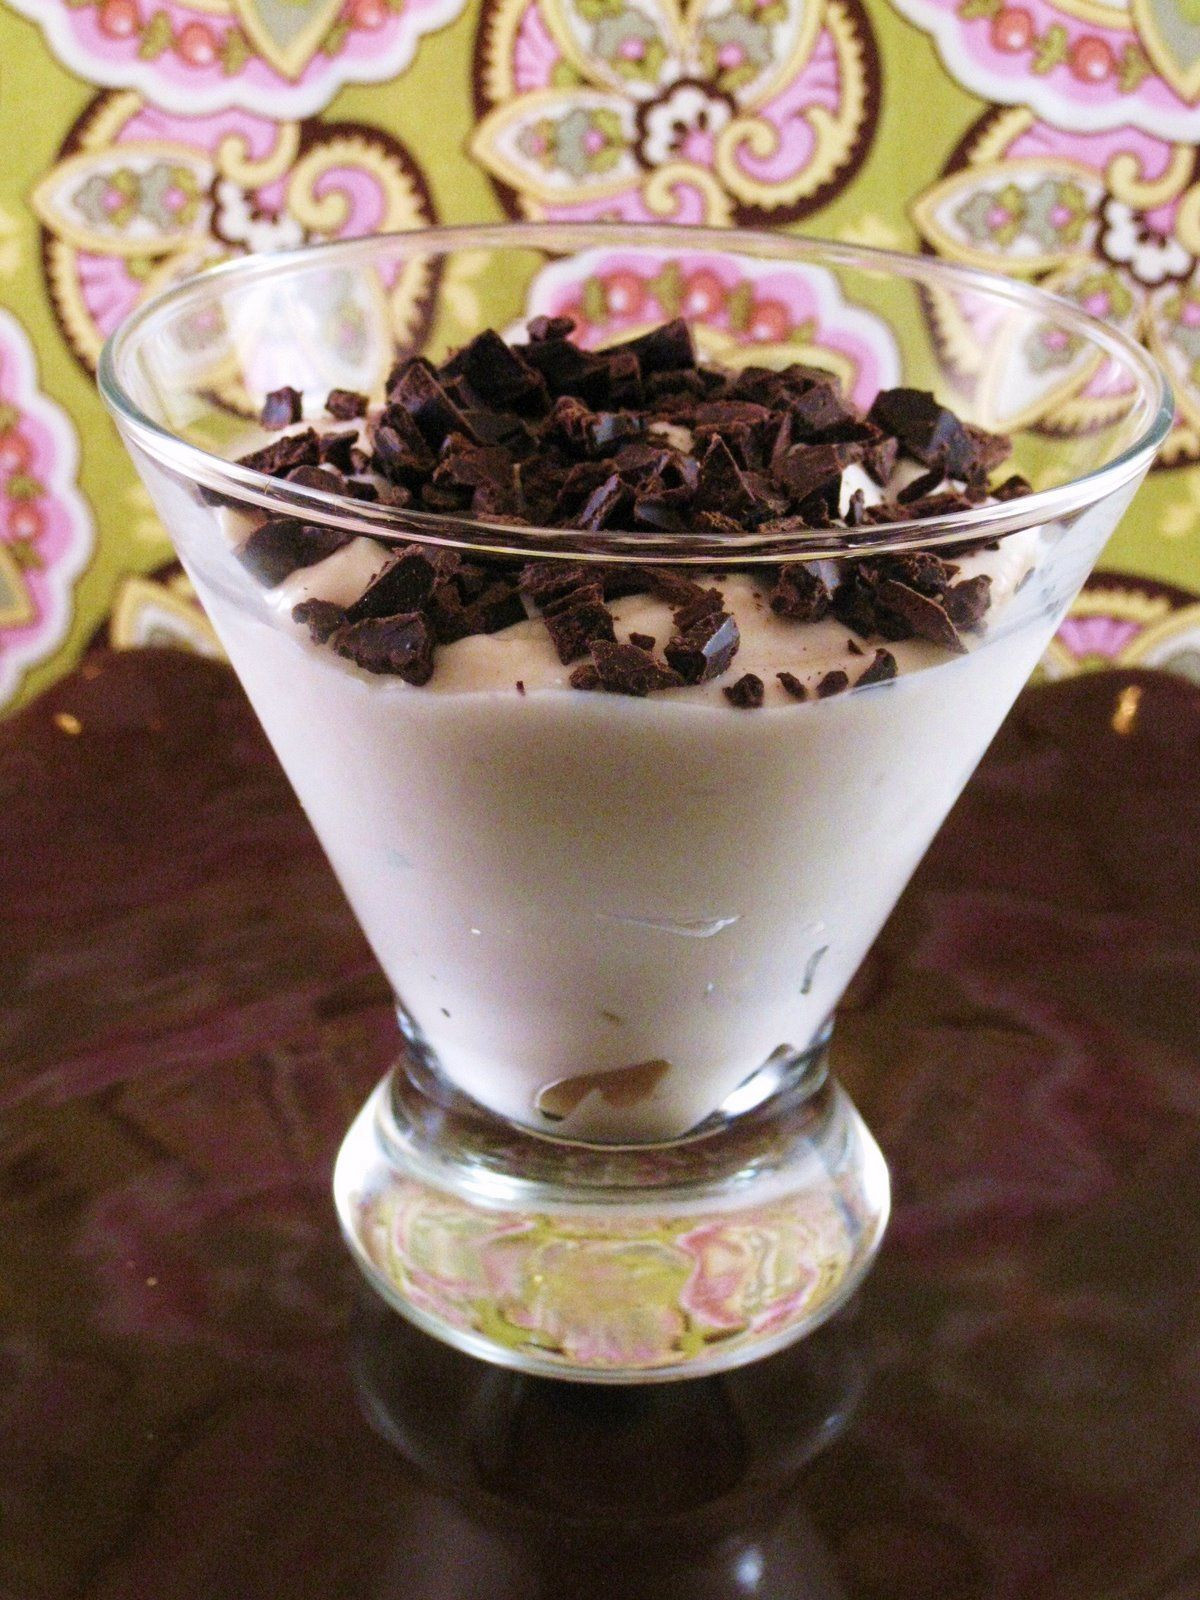 Desserts With Cocoa Powder  Phase one dessert Use unsweetened cocoa powder instead